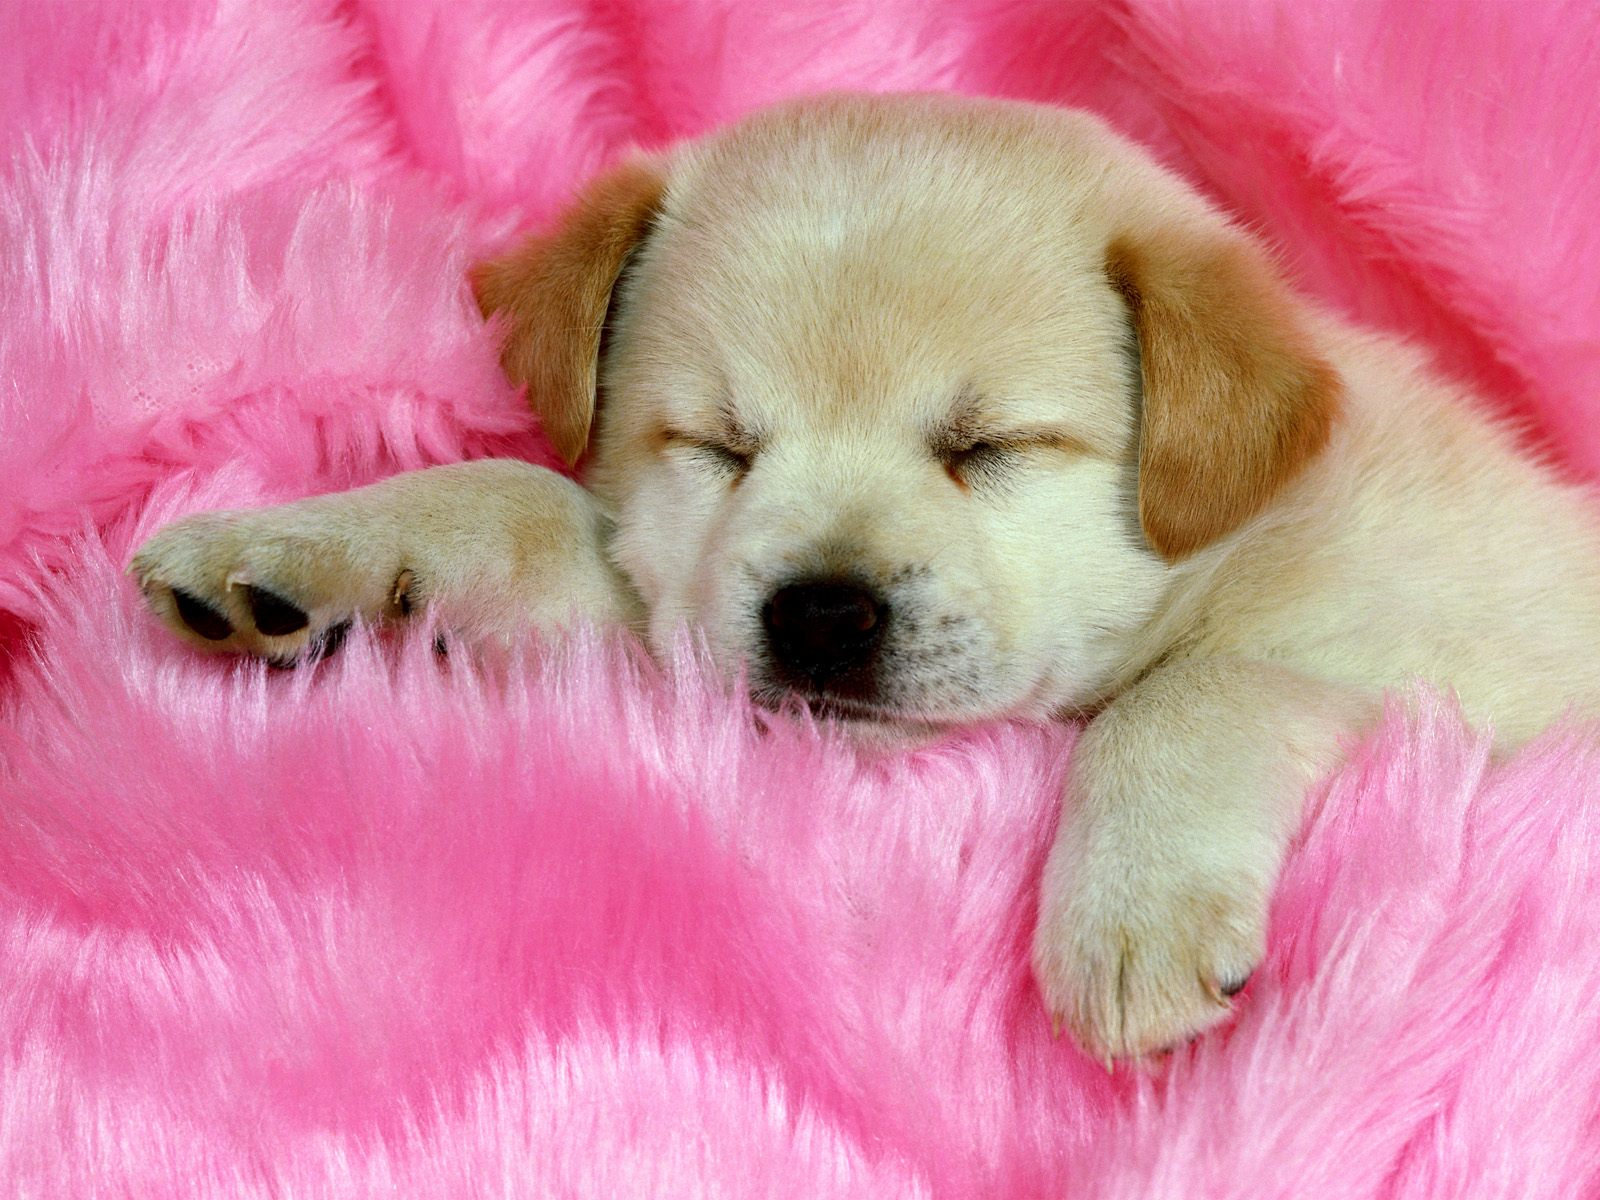 Things PicturesImages And Wallpapers Cute Puppies Wallpapers HD 1600x1200